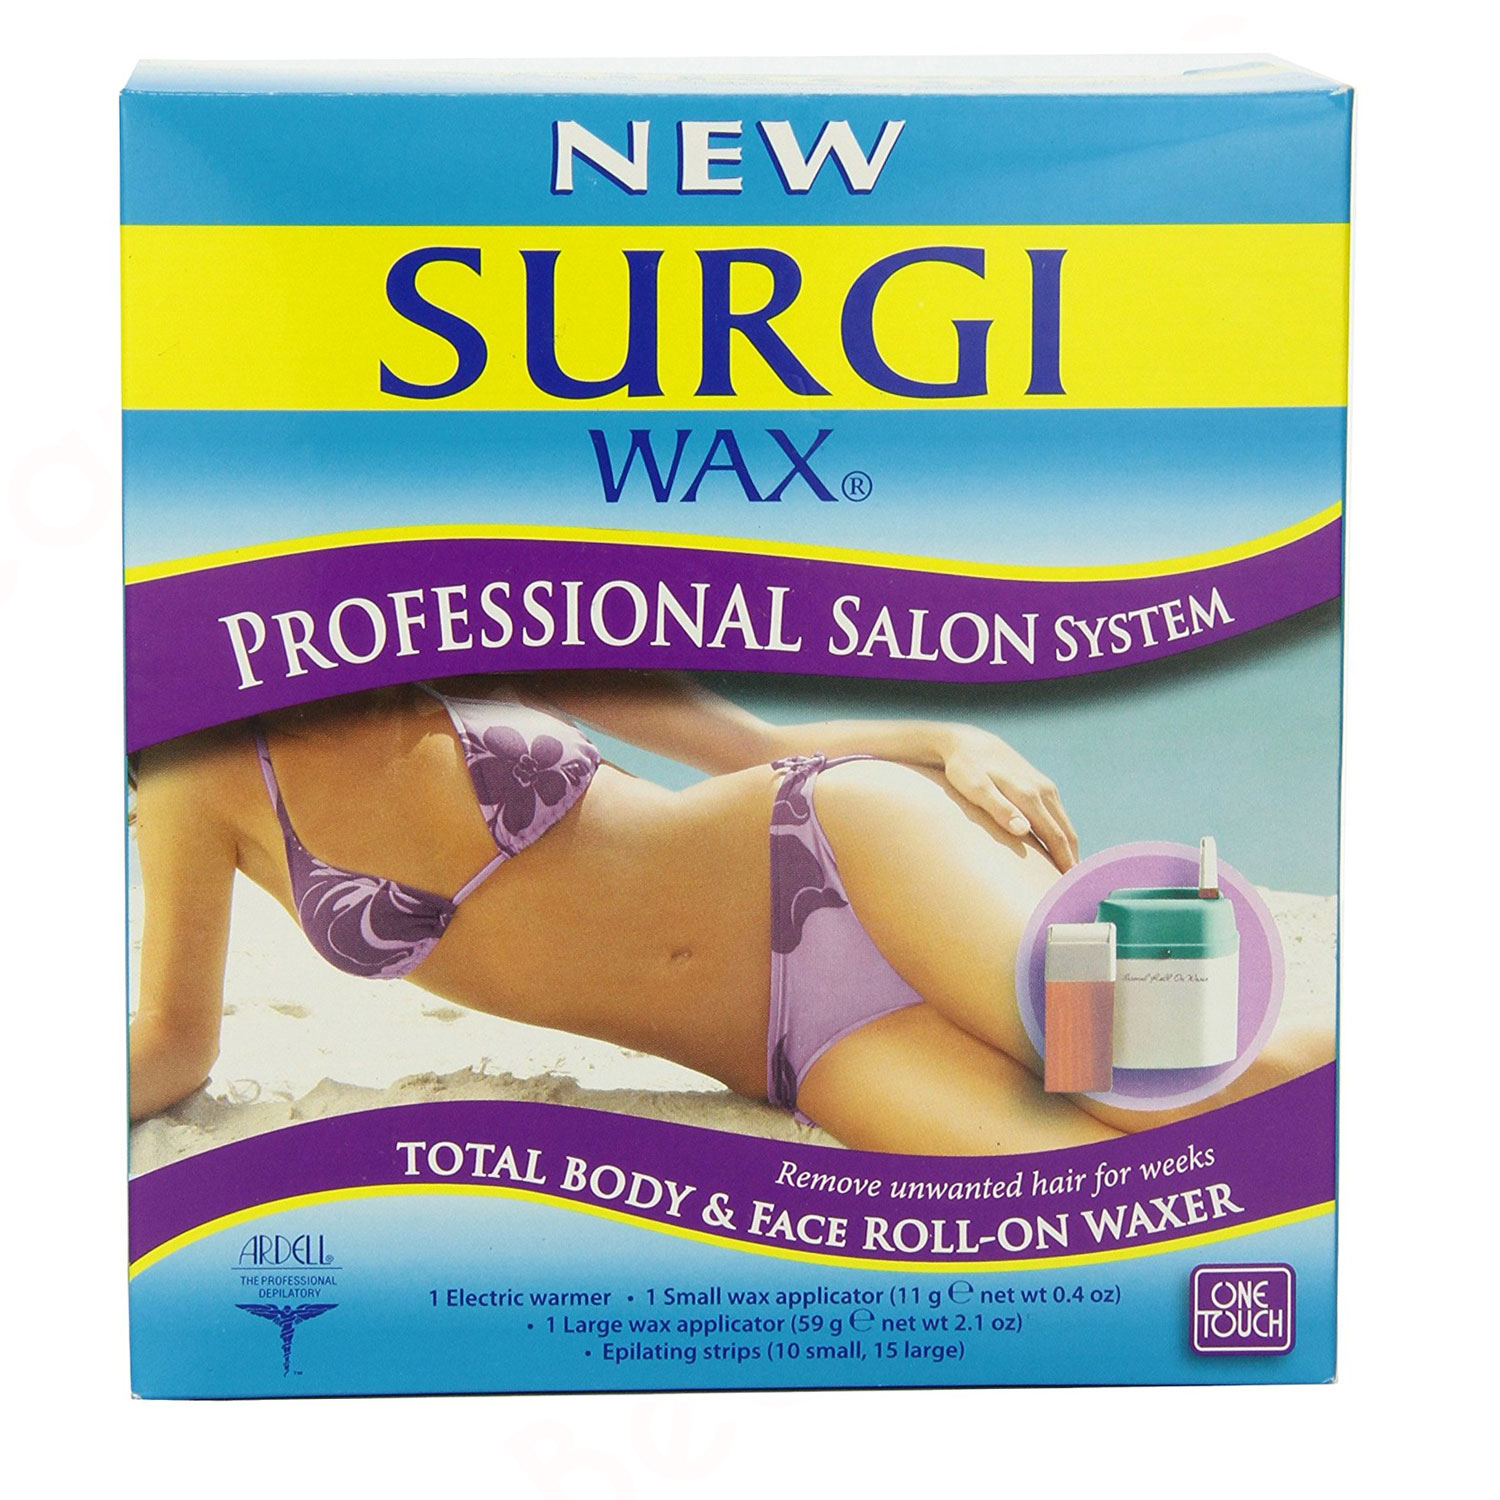 Image of Surgi-wax Professional Salon System Total Body & Face Roll-on Waxer